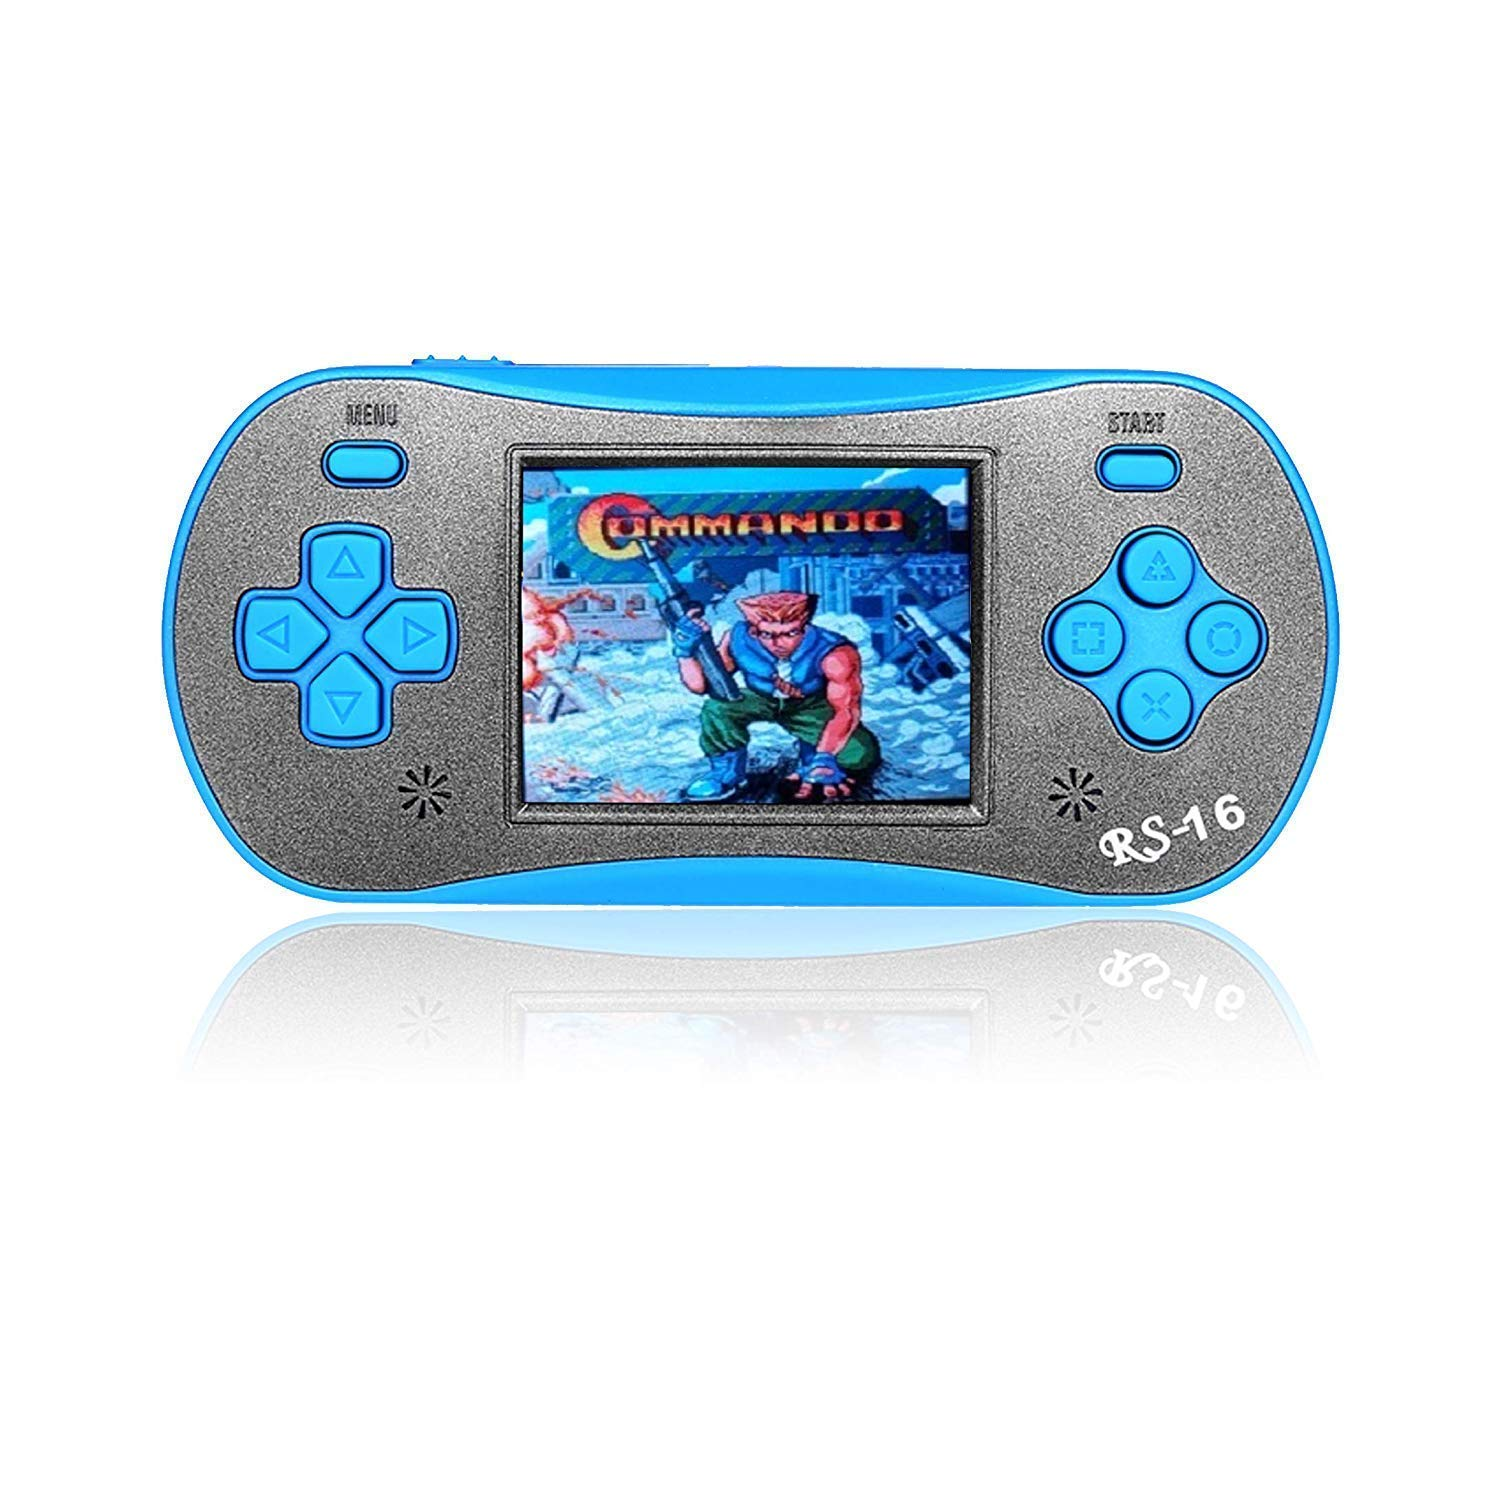 FAMILY POCKET Handheld Game Player for Kids Adults, RS16 Portable Classic Game Controller Built-in 260 Game 2.5 inch LCD Retro Arcade Video Game System Children's Birthday Gift-Blue by FAMILY POCKET